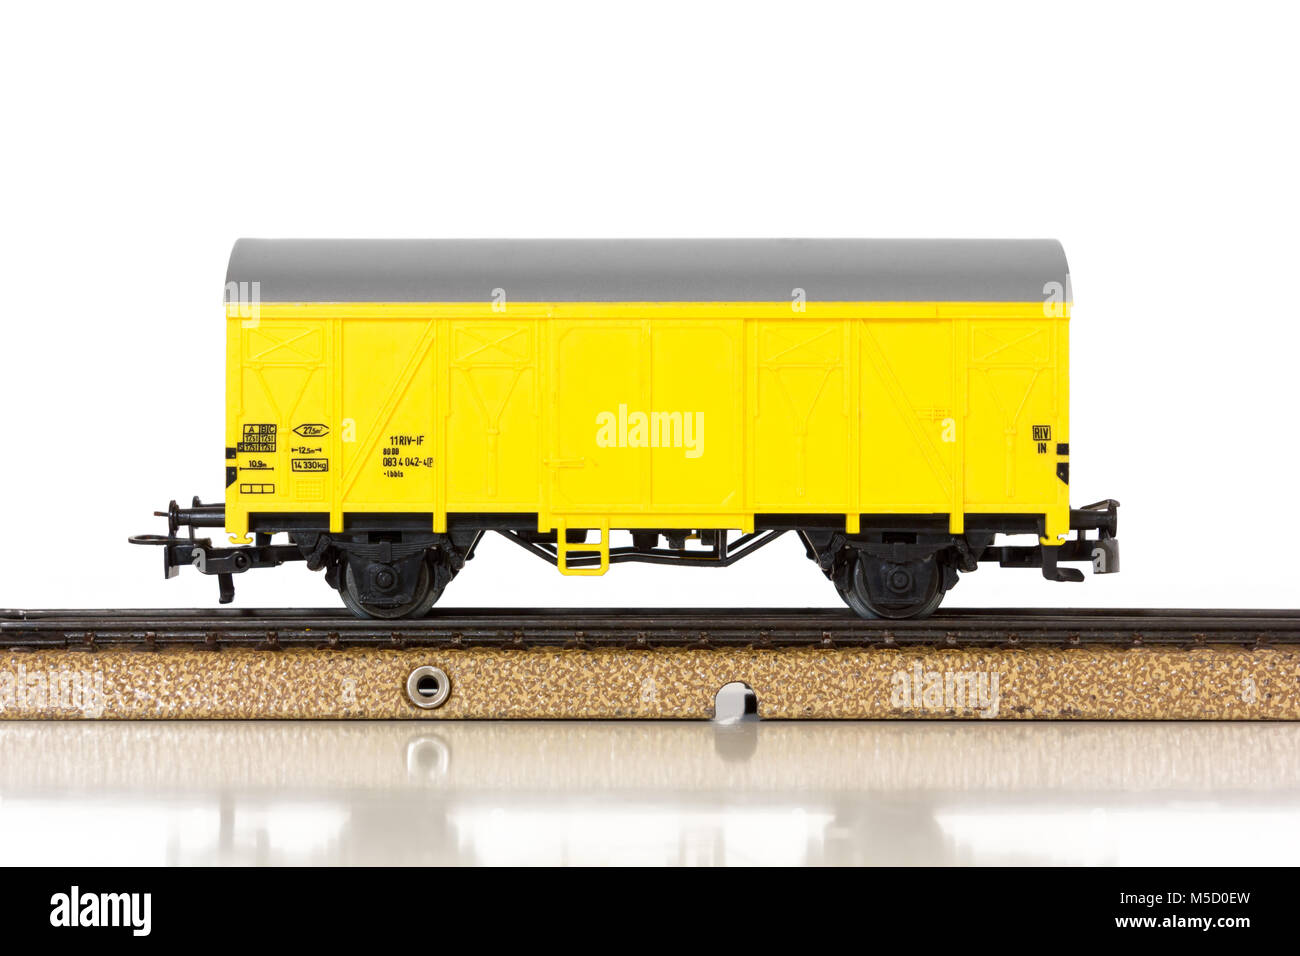 Yellow boxcar of an electric model train on the rails - Stock Image